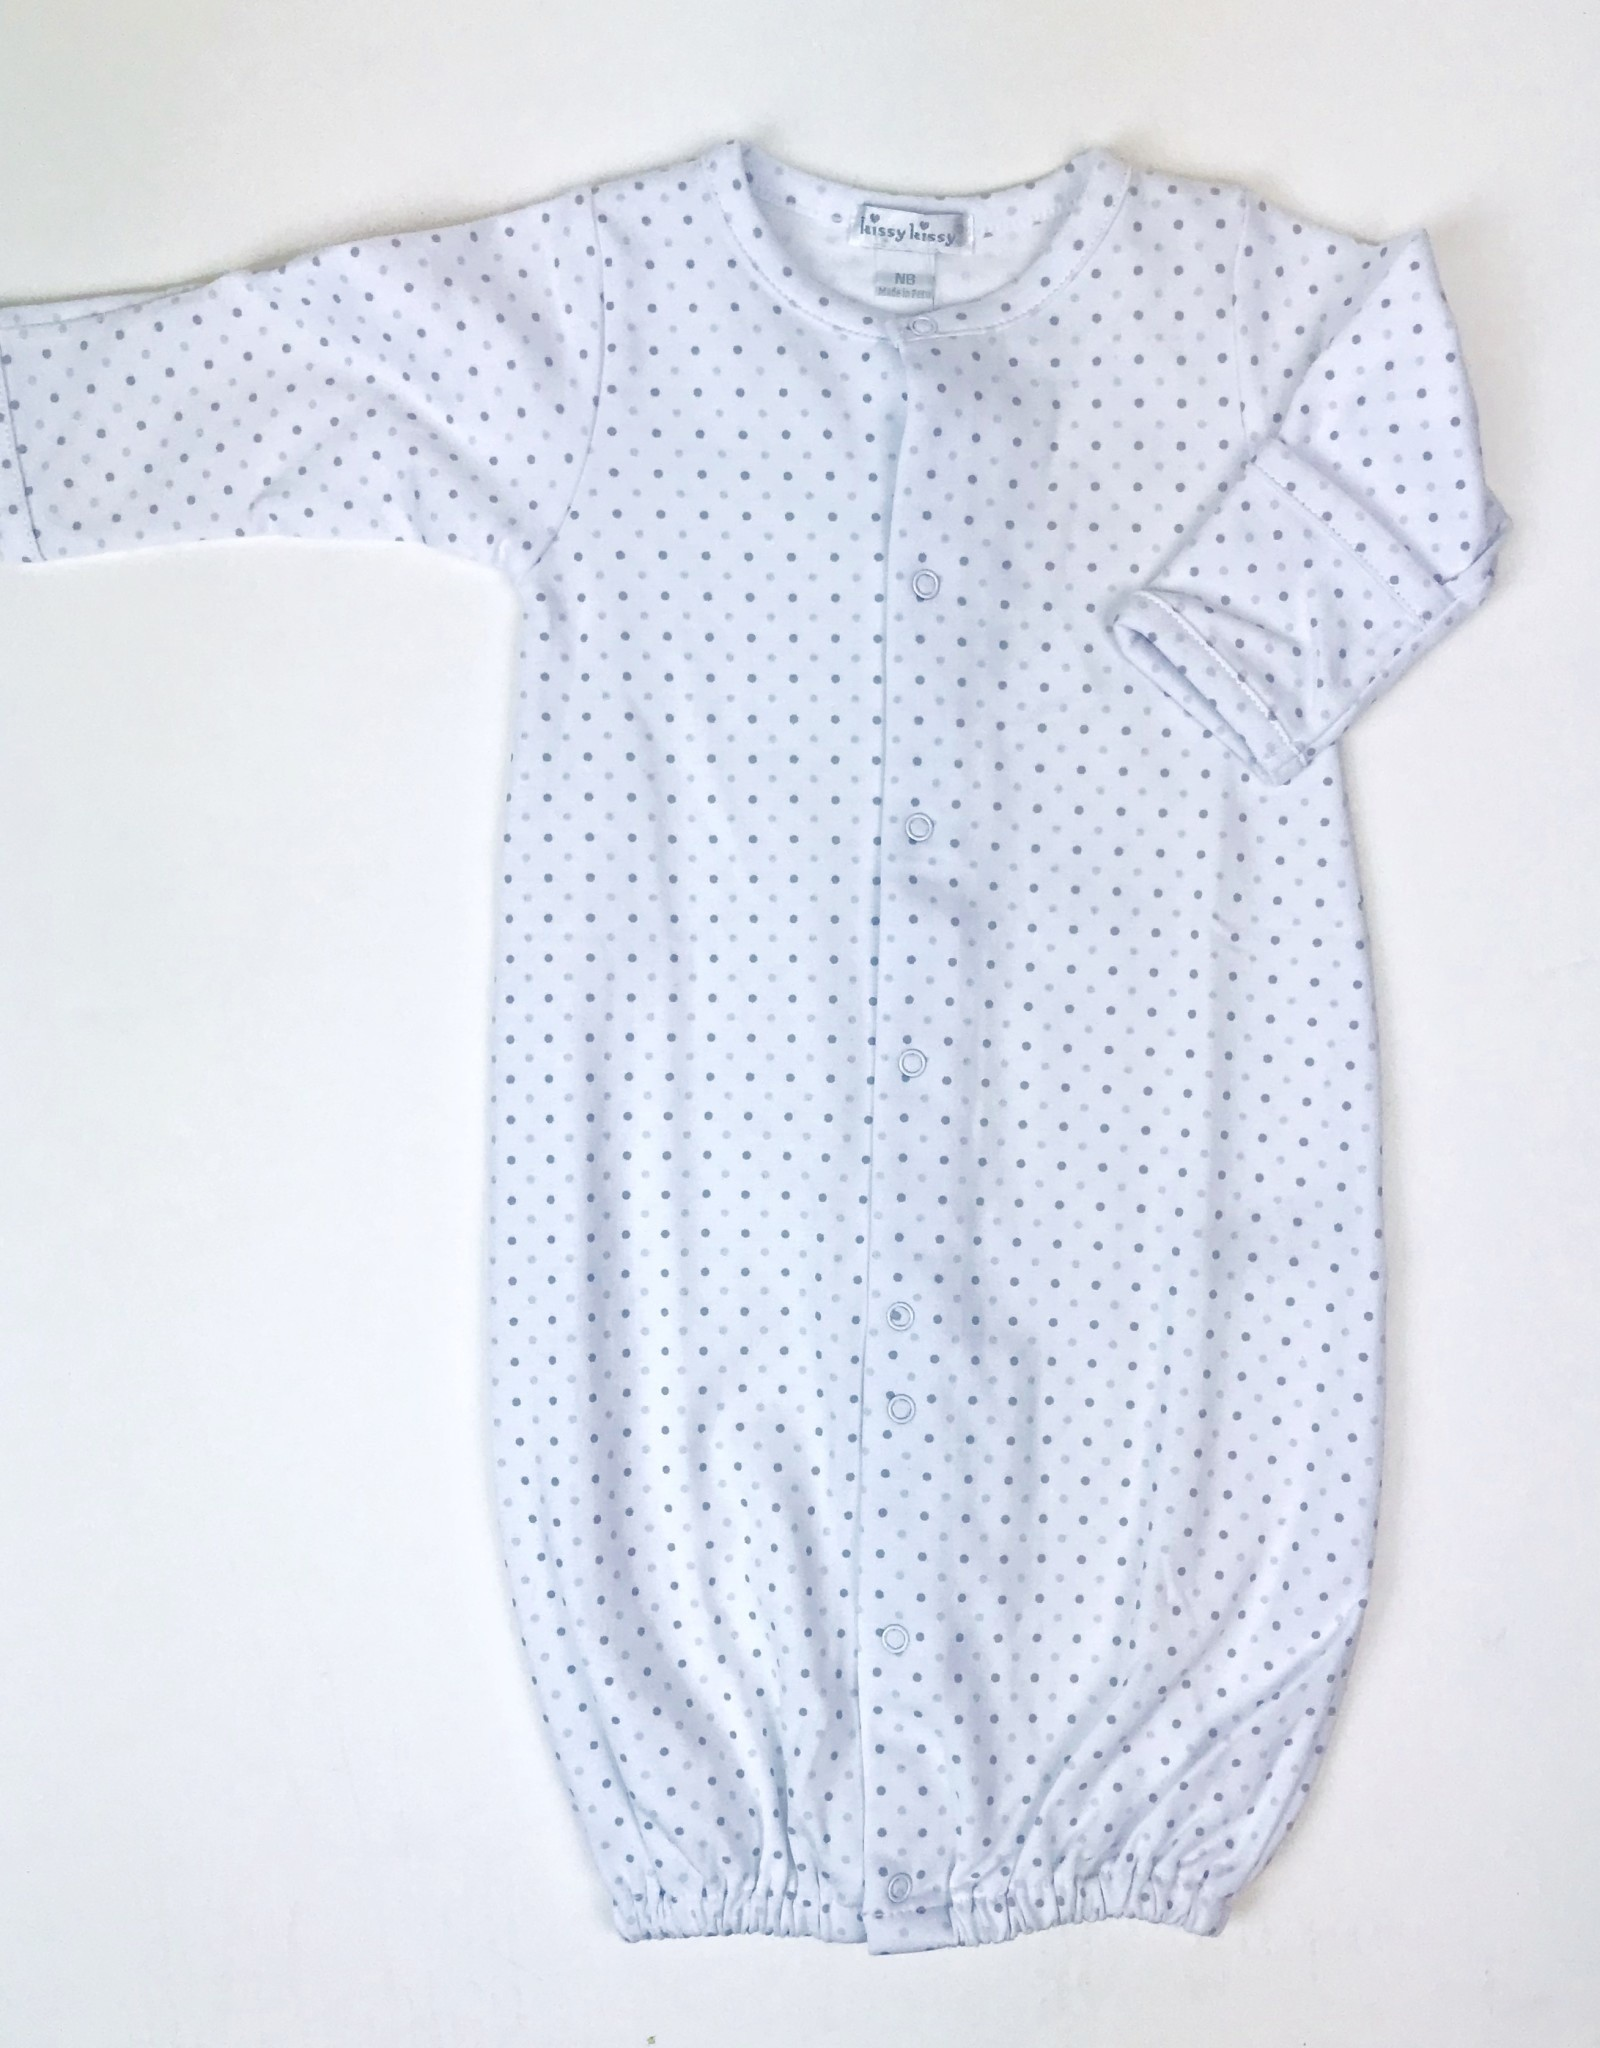 KissyKissy Gown White Dot blue or Grey NB-6m